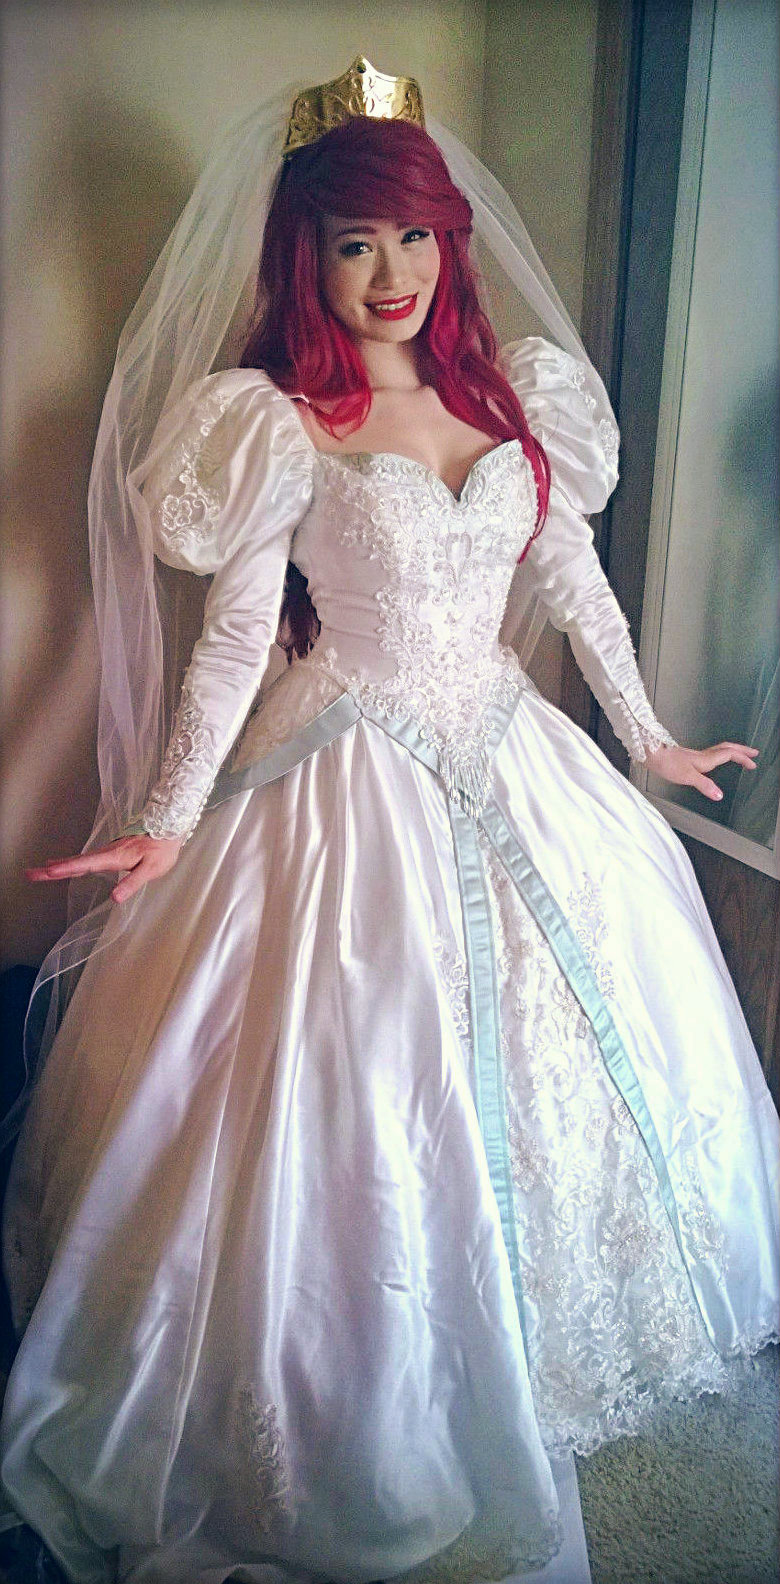 ariel's wedding dress